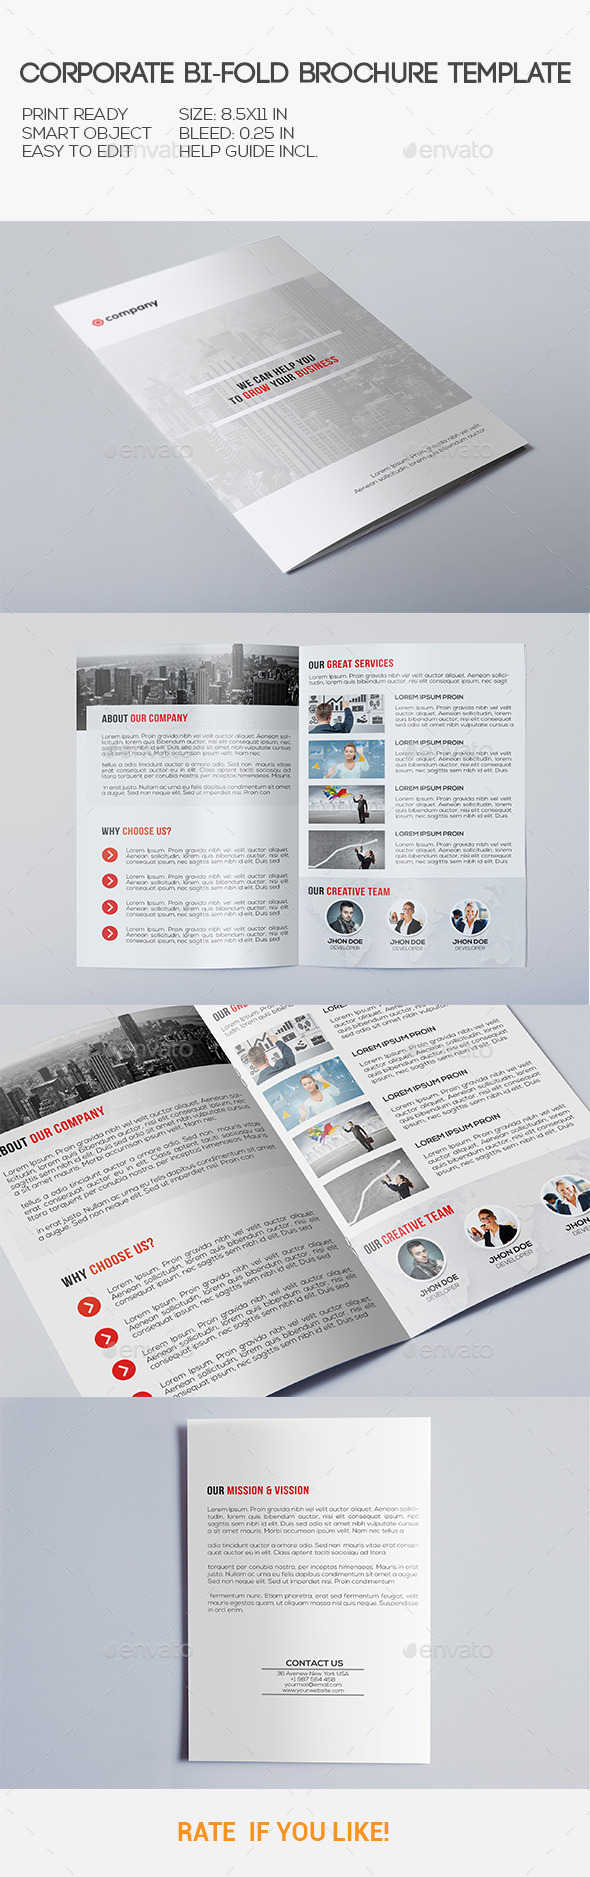 GraphicRiver Corporate Bi-Fold Brochure 10535369